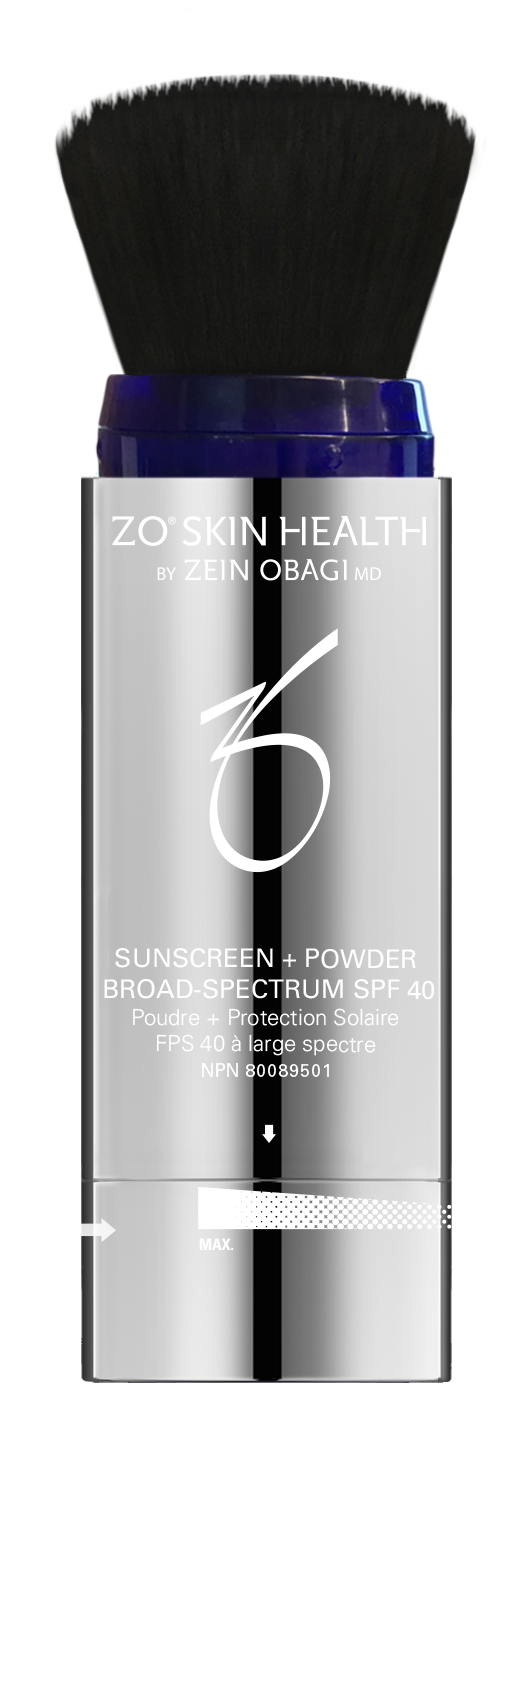 CAN Sunscreen + Powder Opened